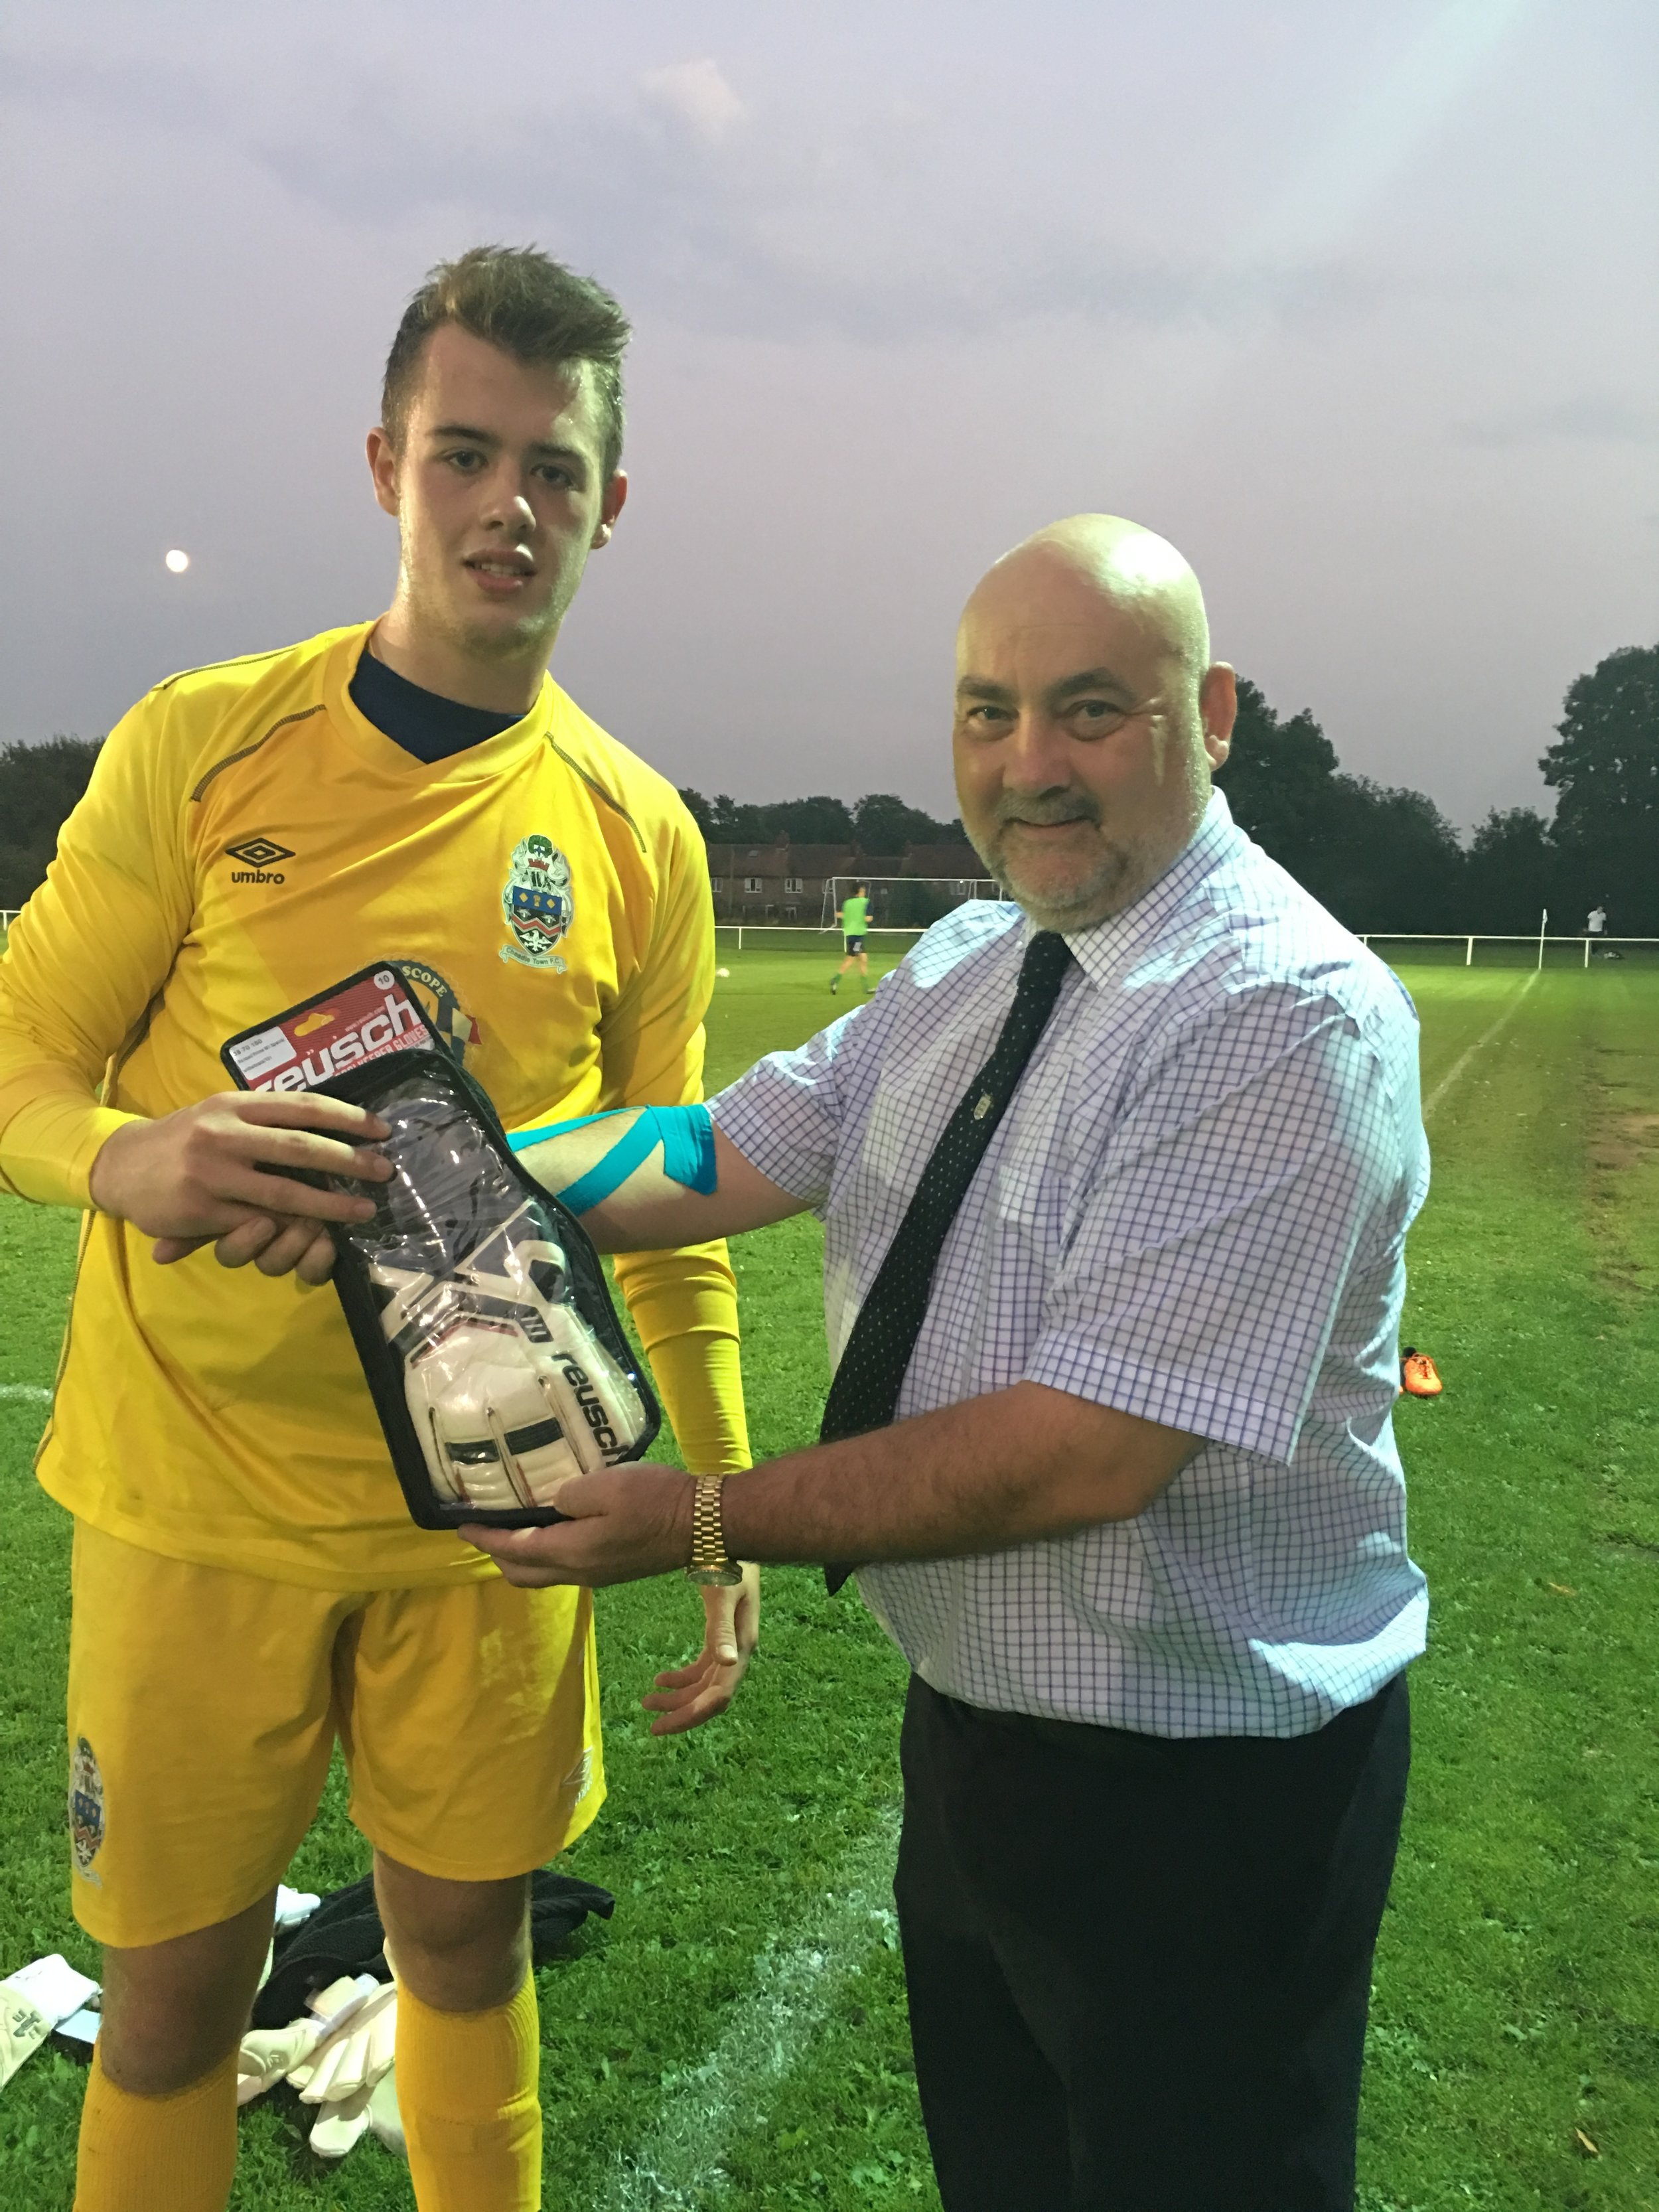 Ben Jupp receiving his Goalkeeper of the Month Award from the Hallmark Security League's Ian Williams before kick-off